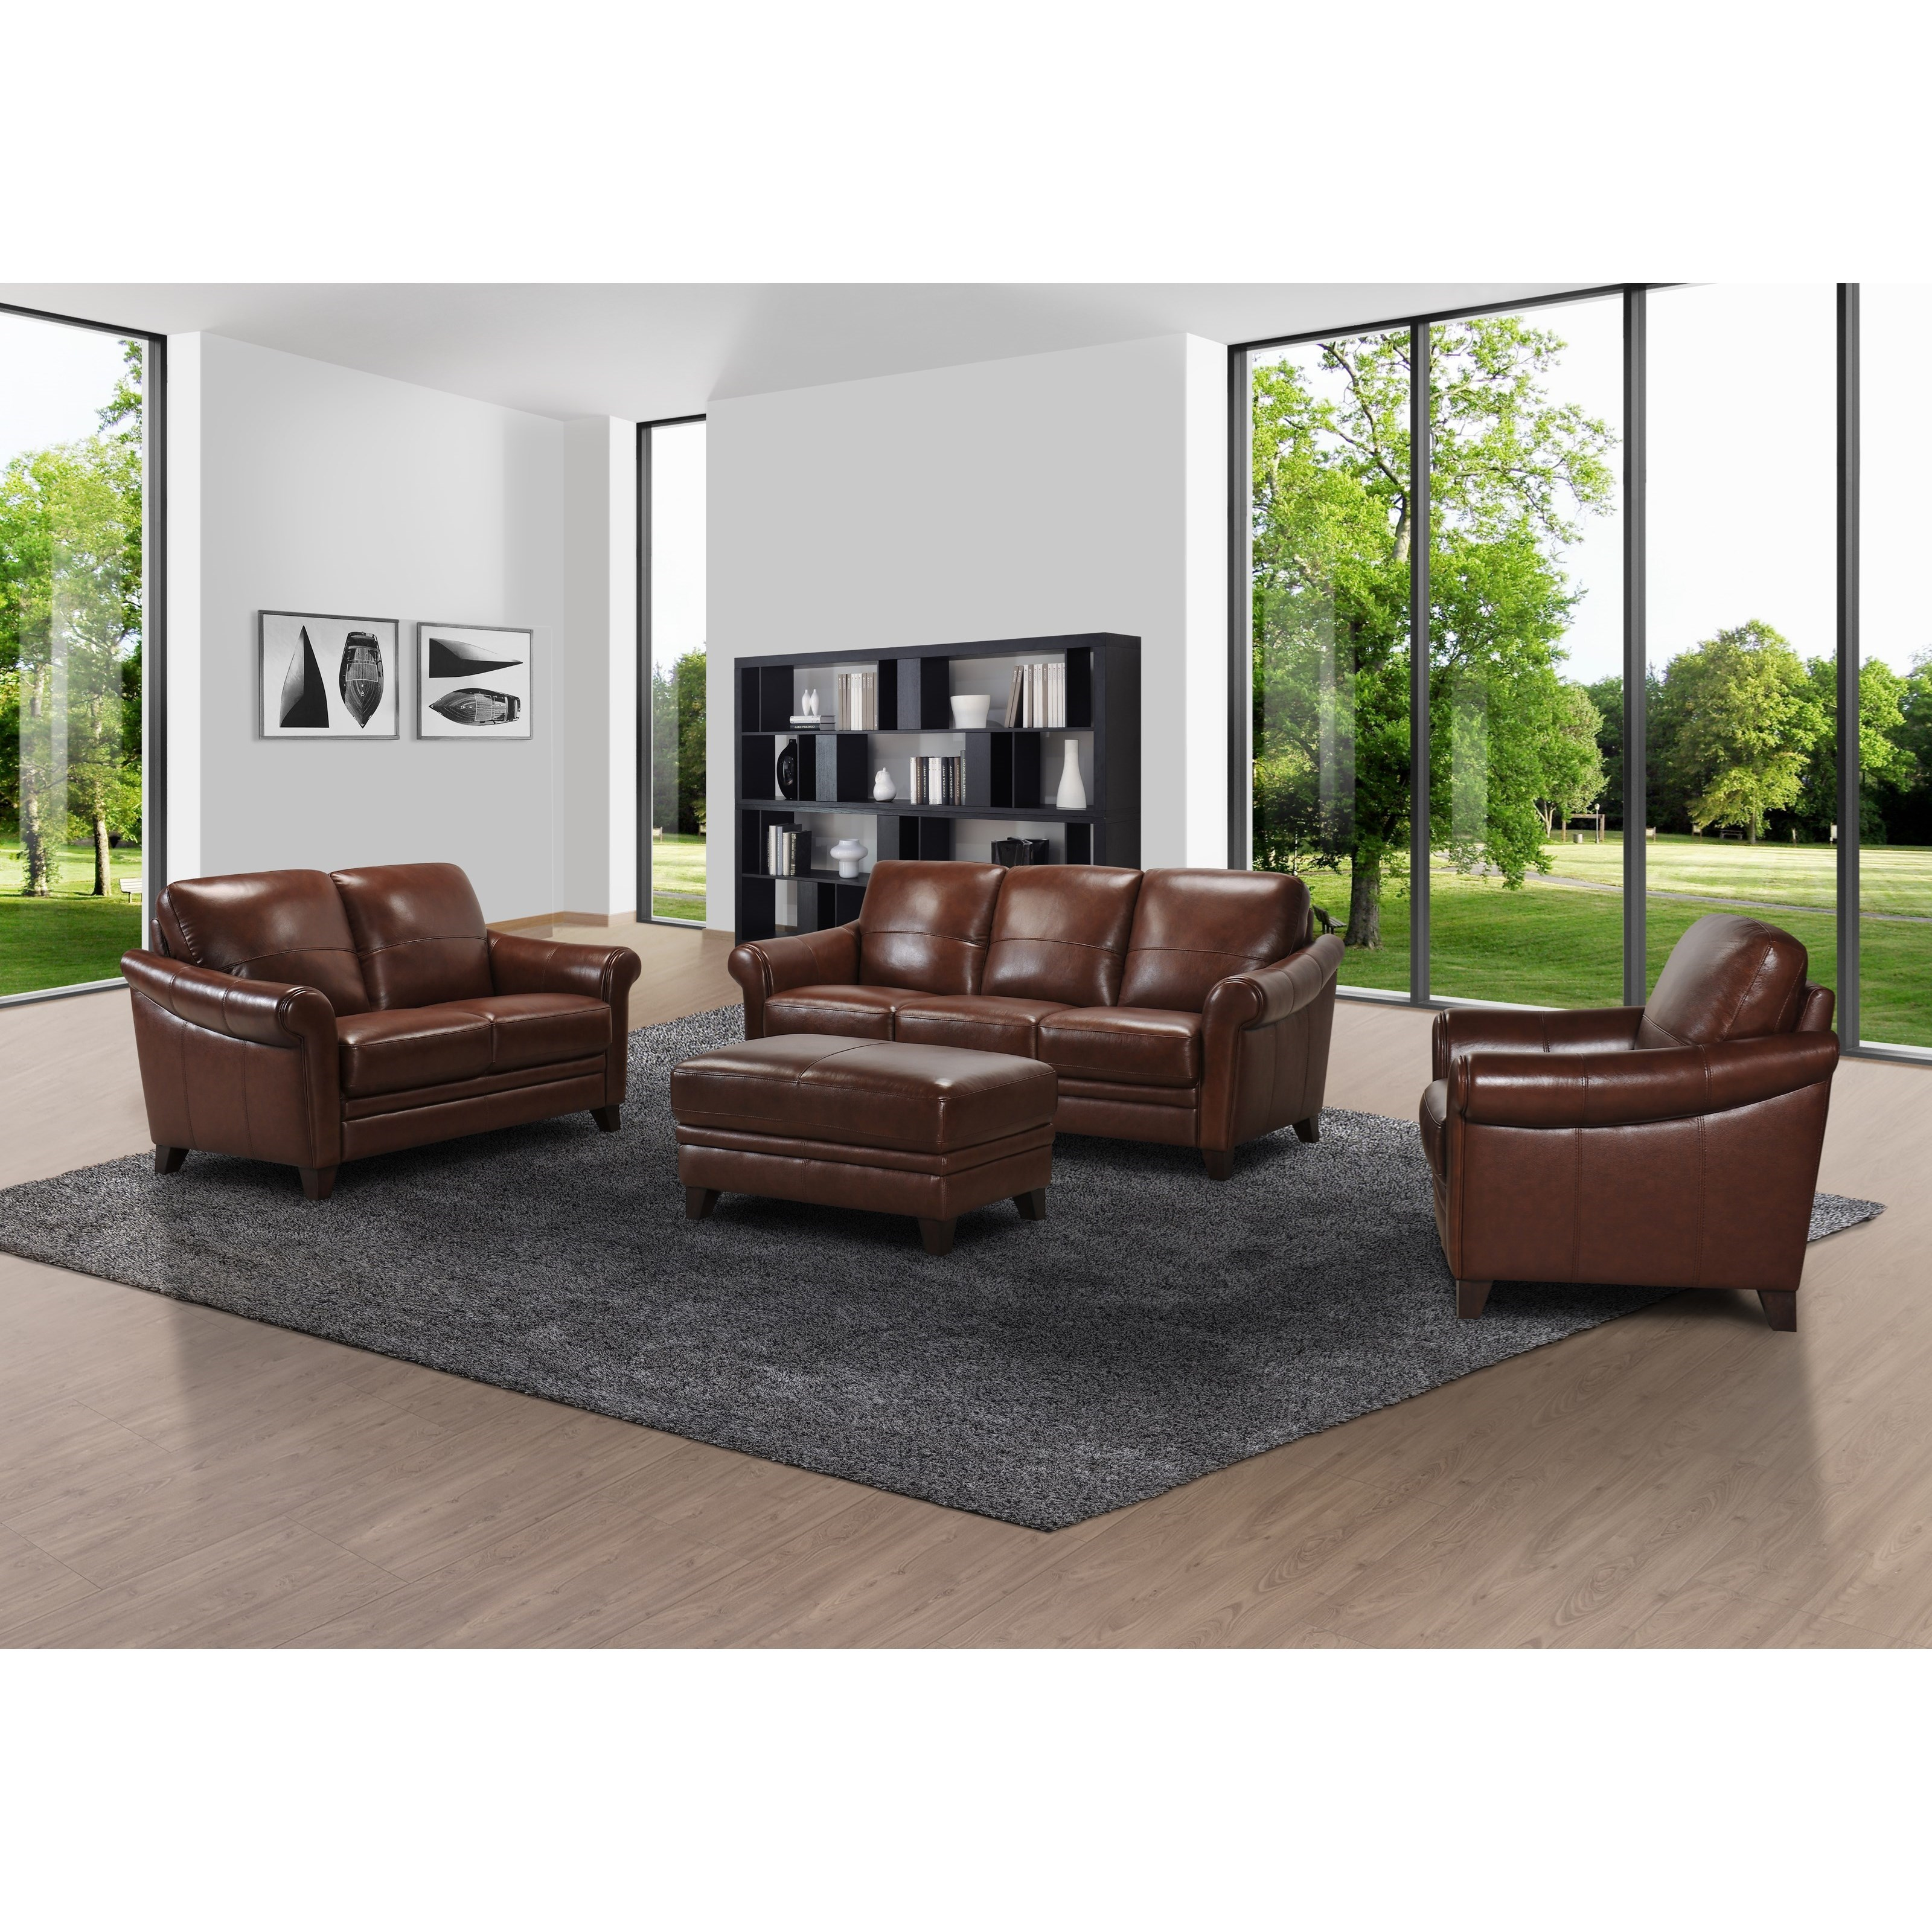 32238 Living Room Group by Violino at Furniture Superstore - Rochester, MN